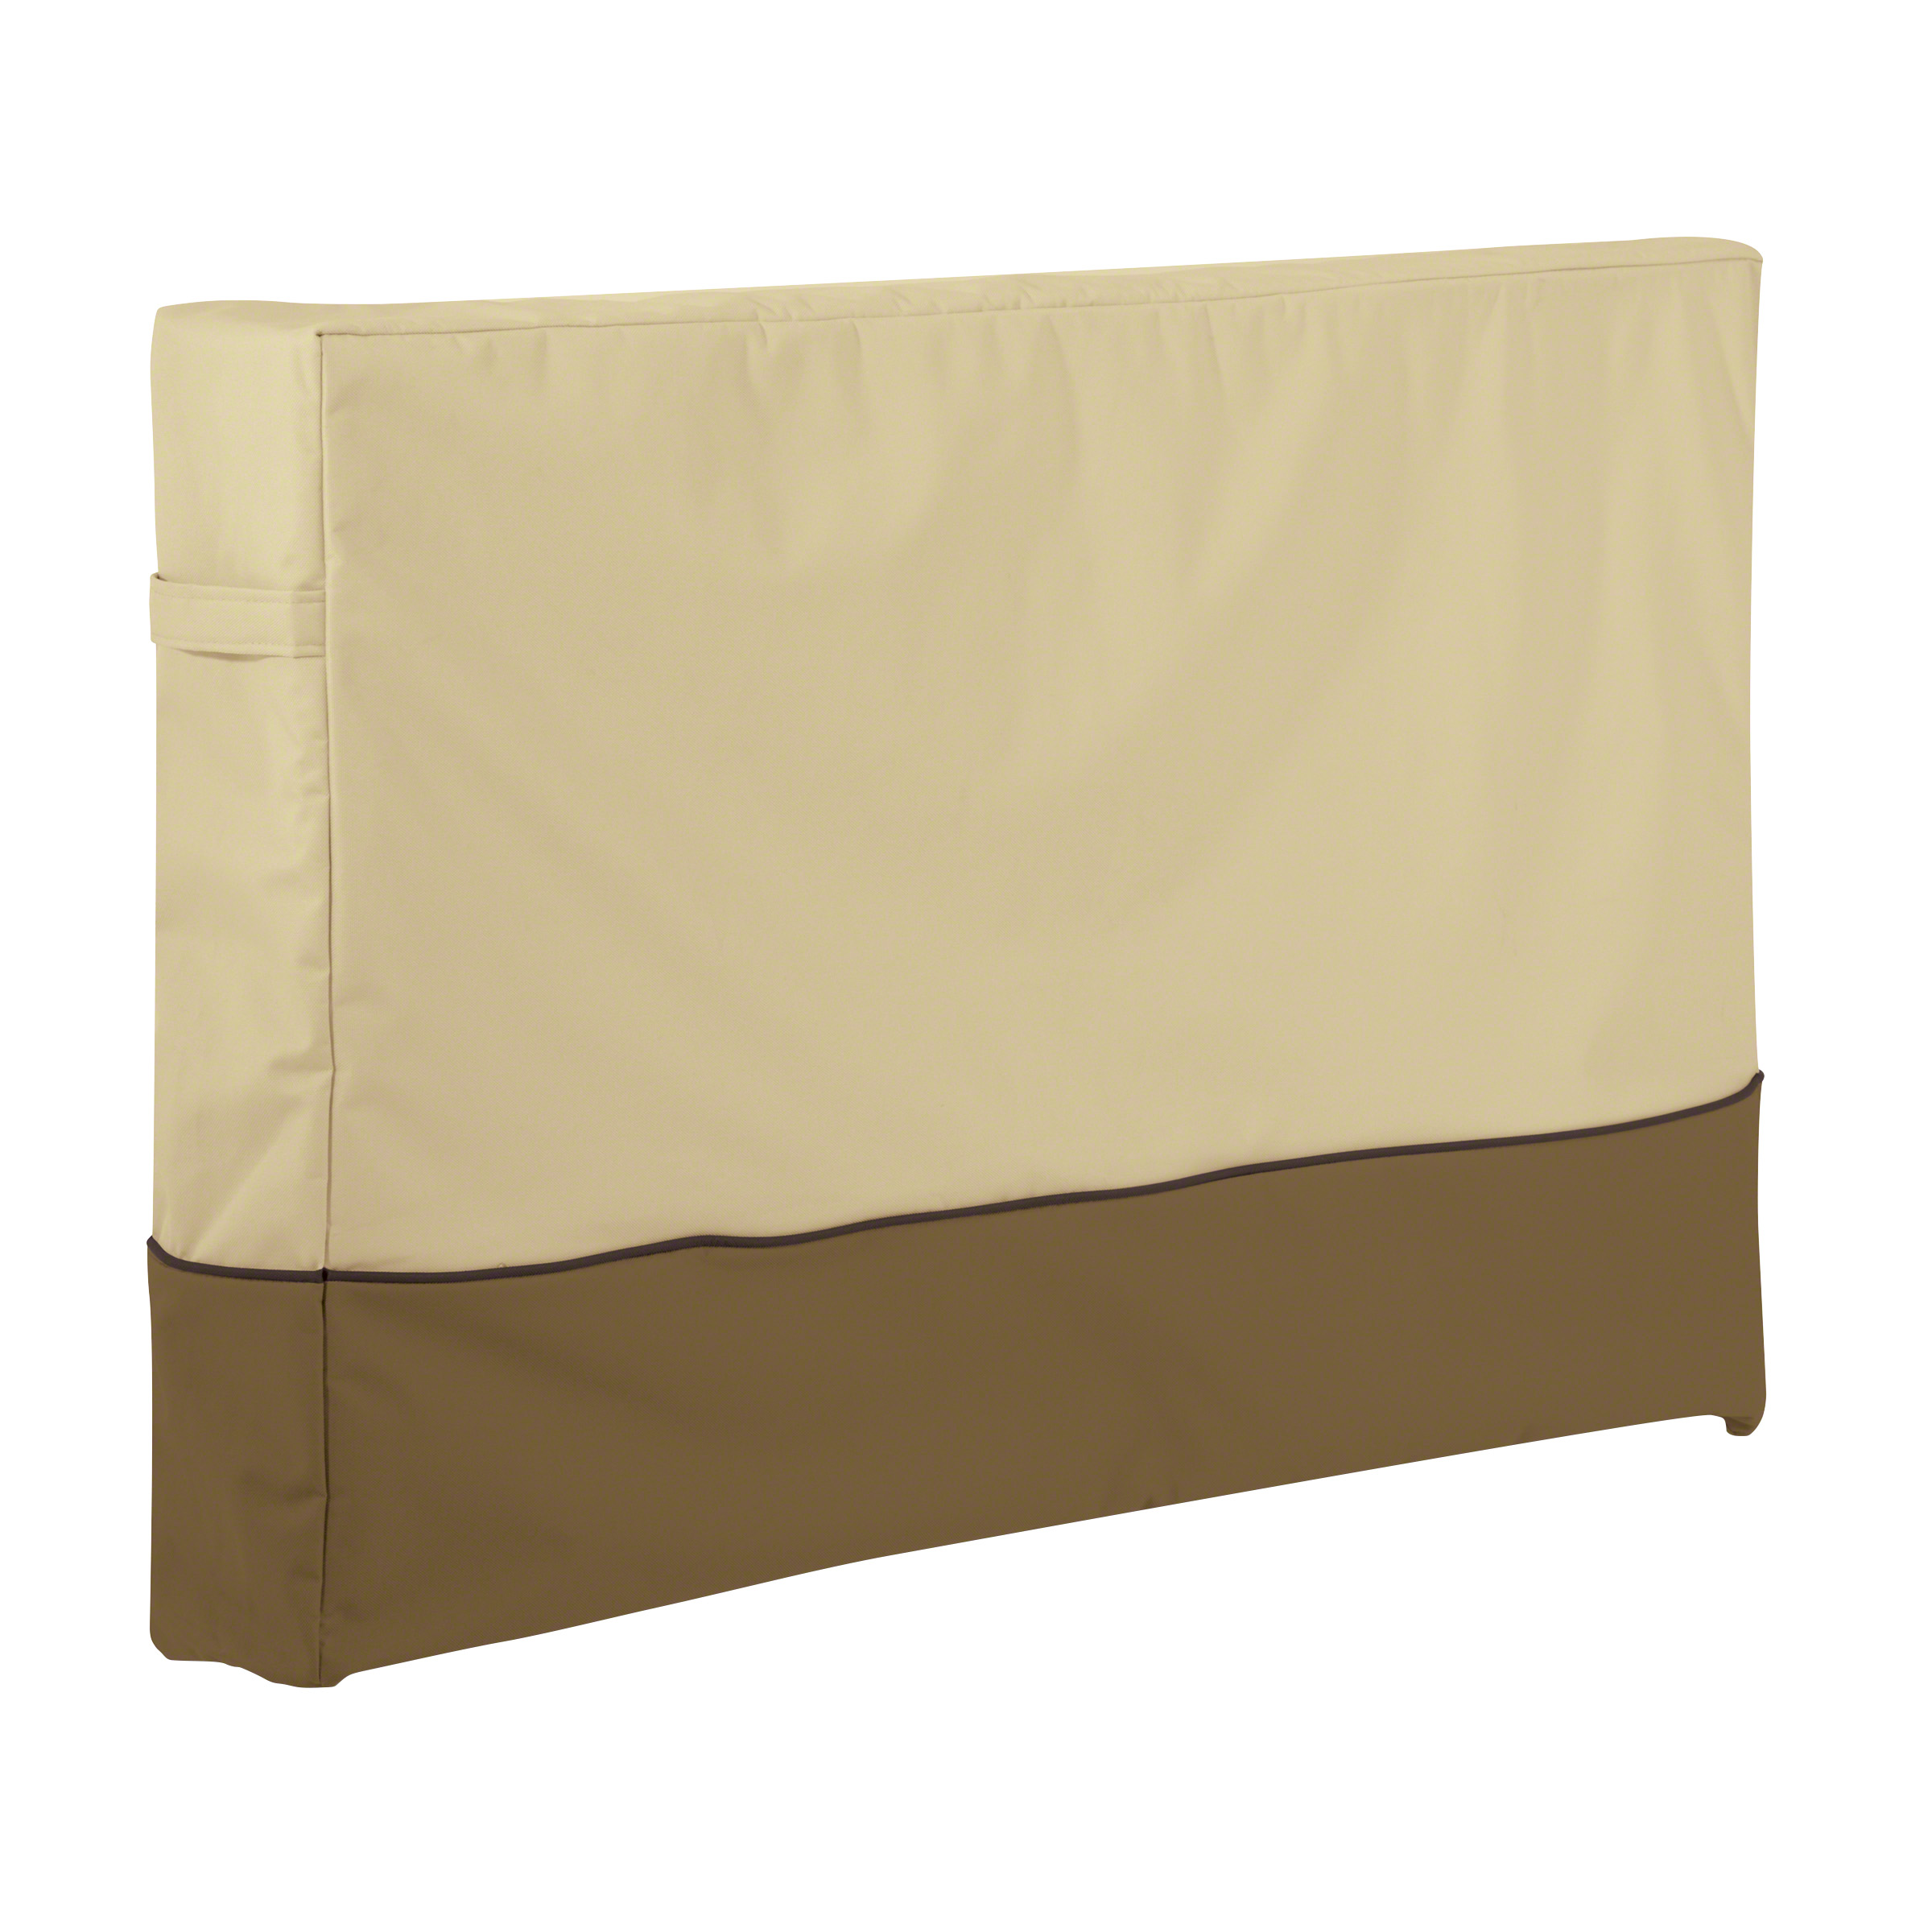 ONE NEW OUTDOOR TV COVER PEBB - 32IN - CLASSIC  55-789-151501-00